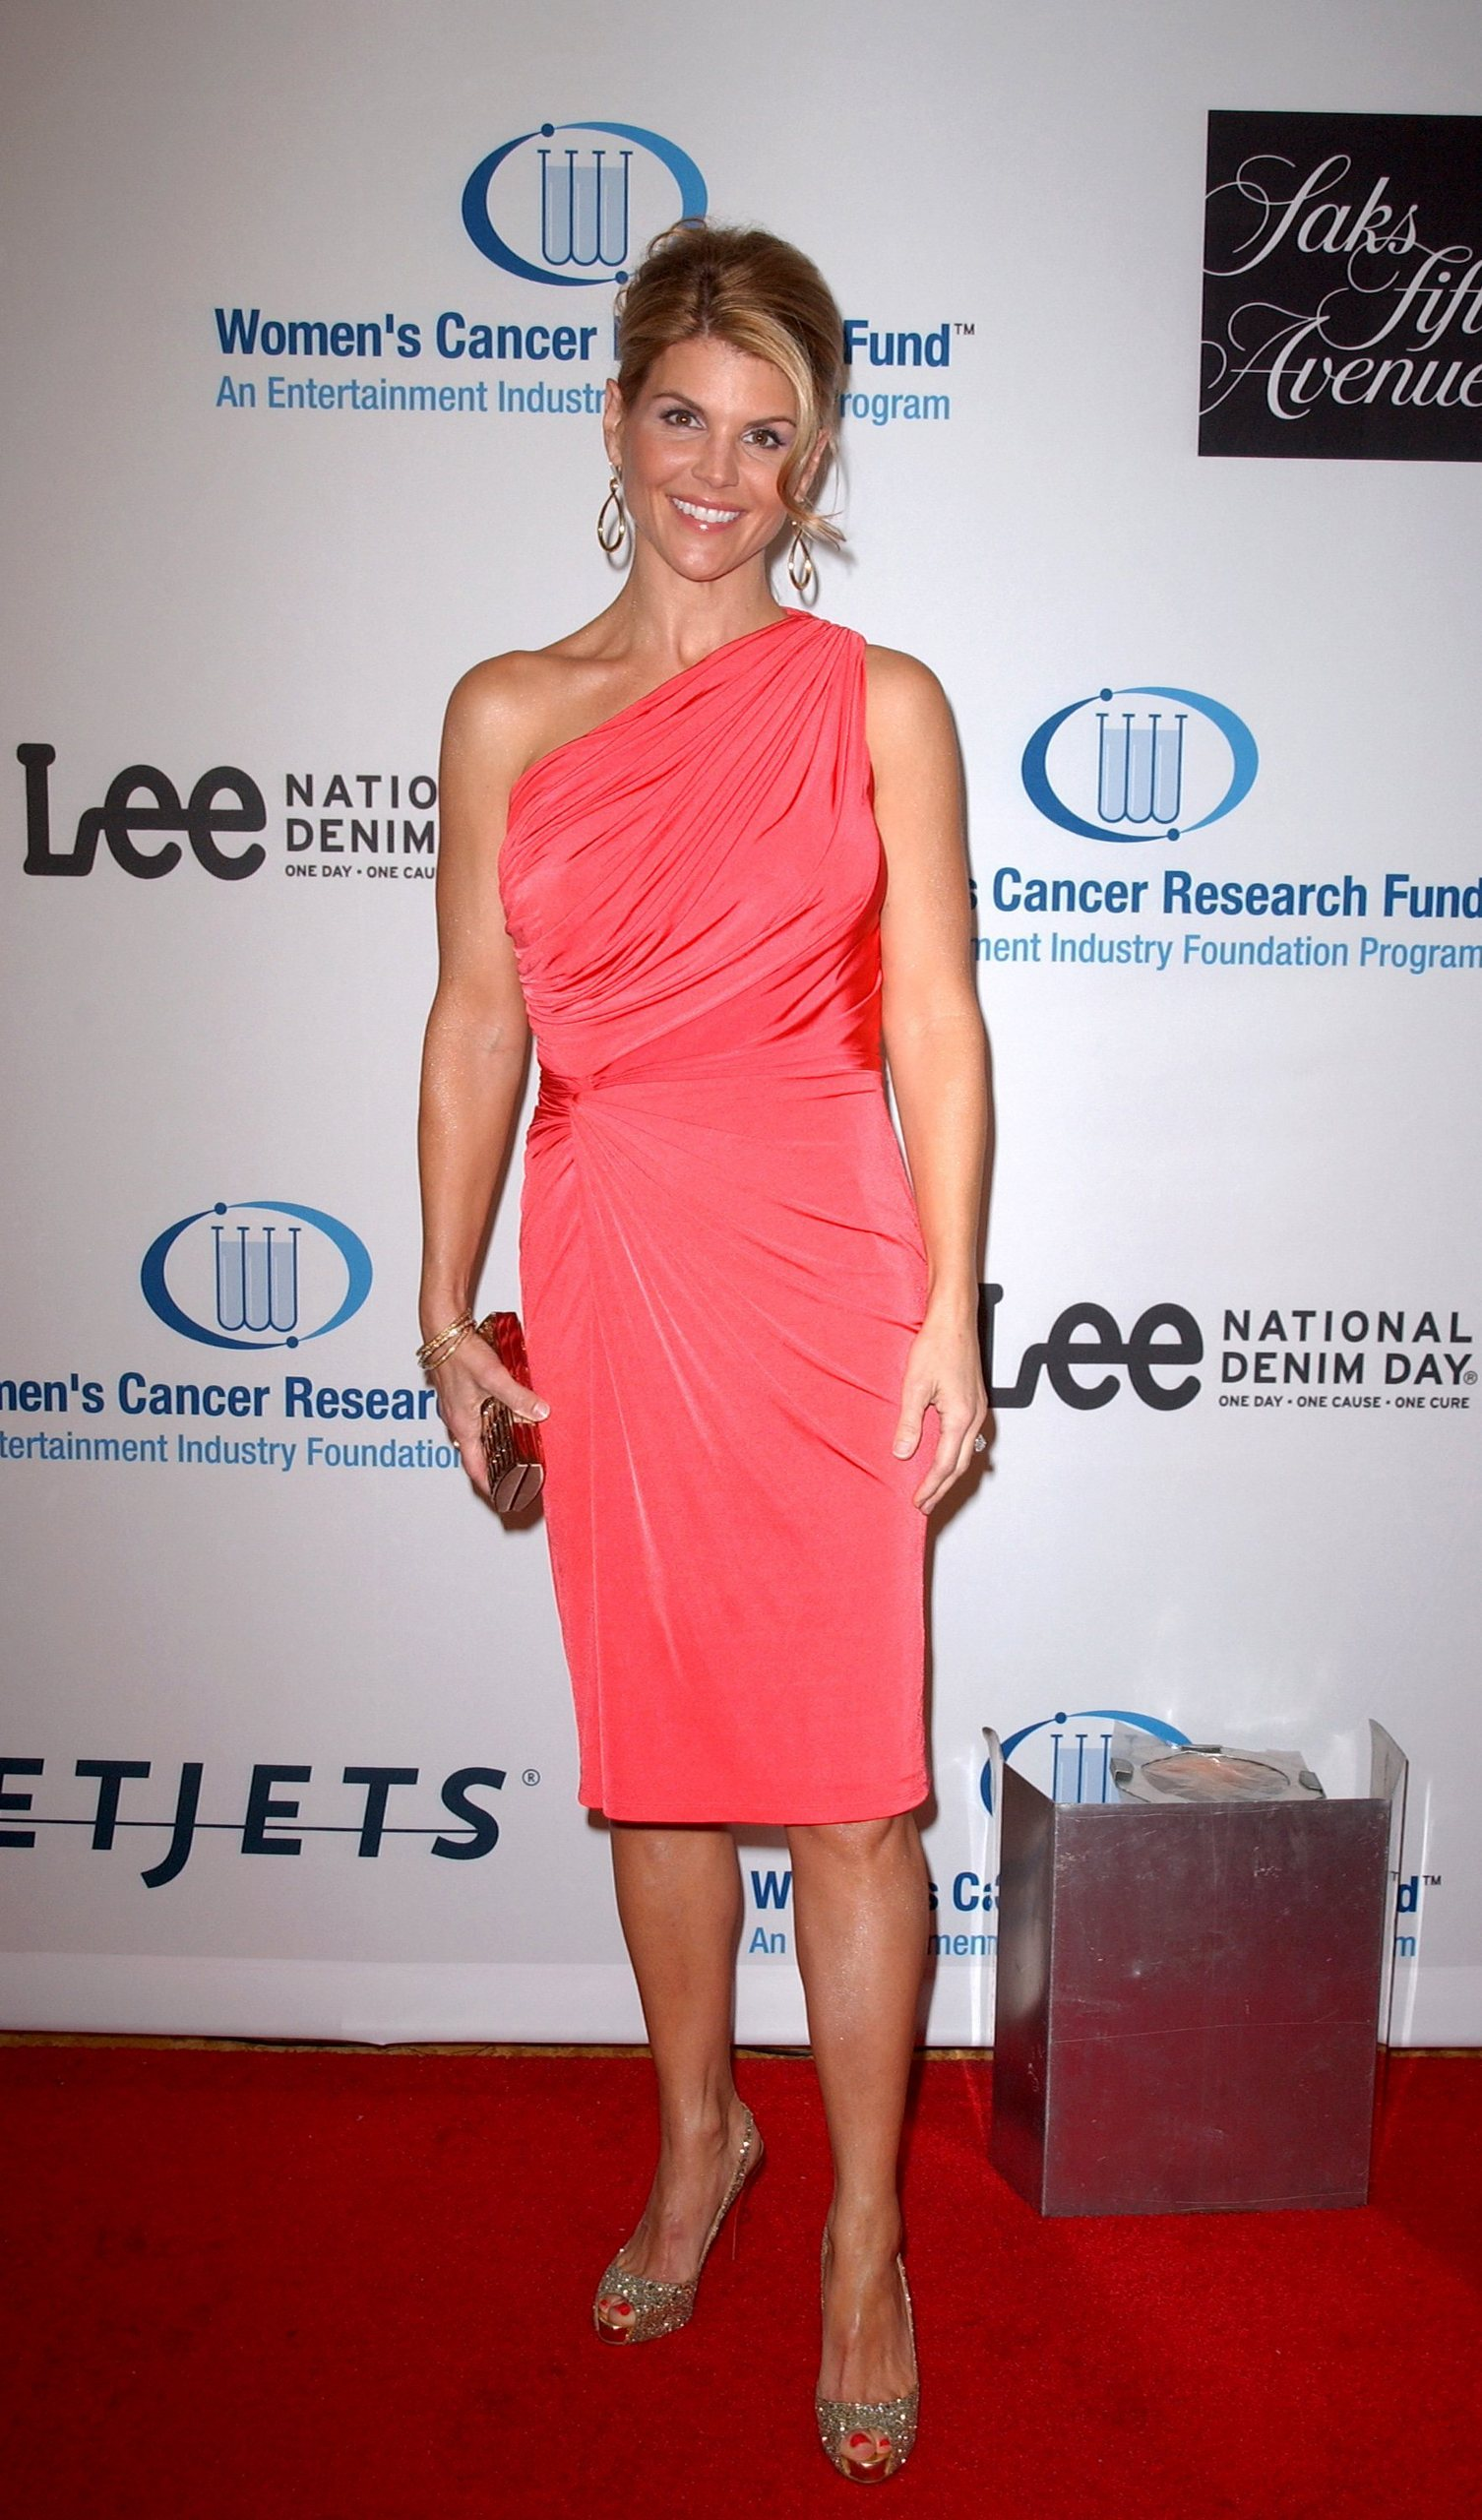 Lori Loughlin cancer